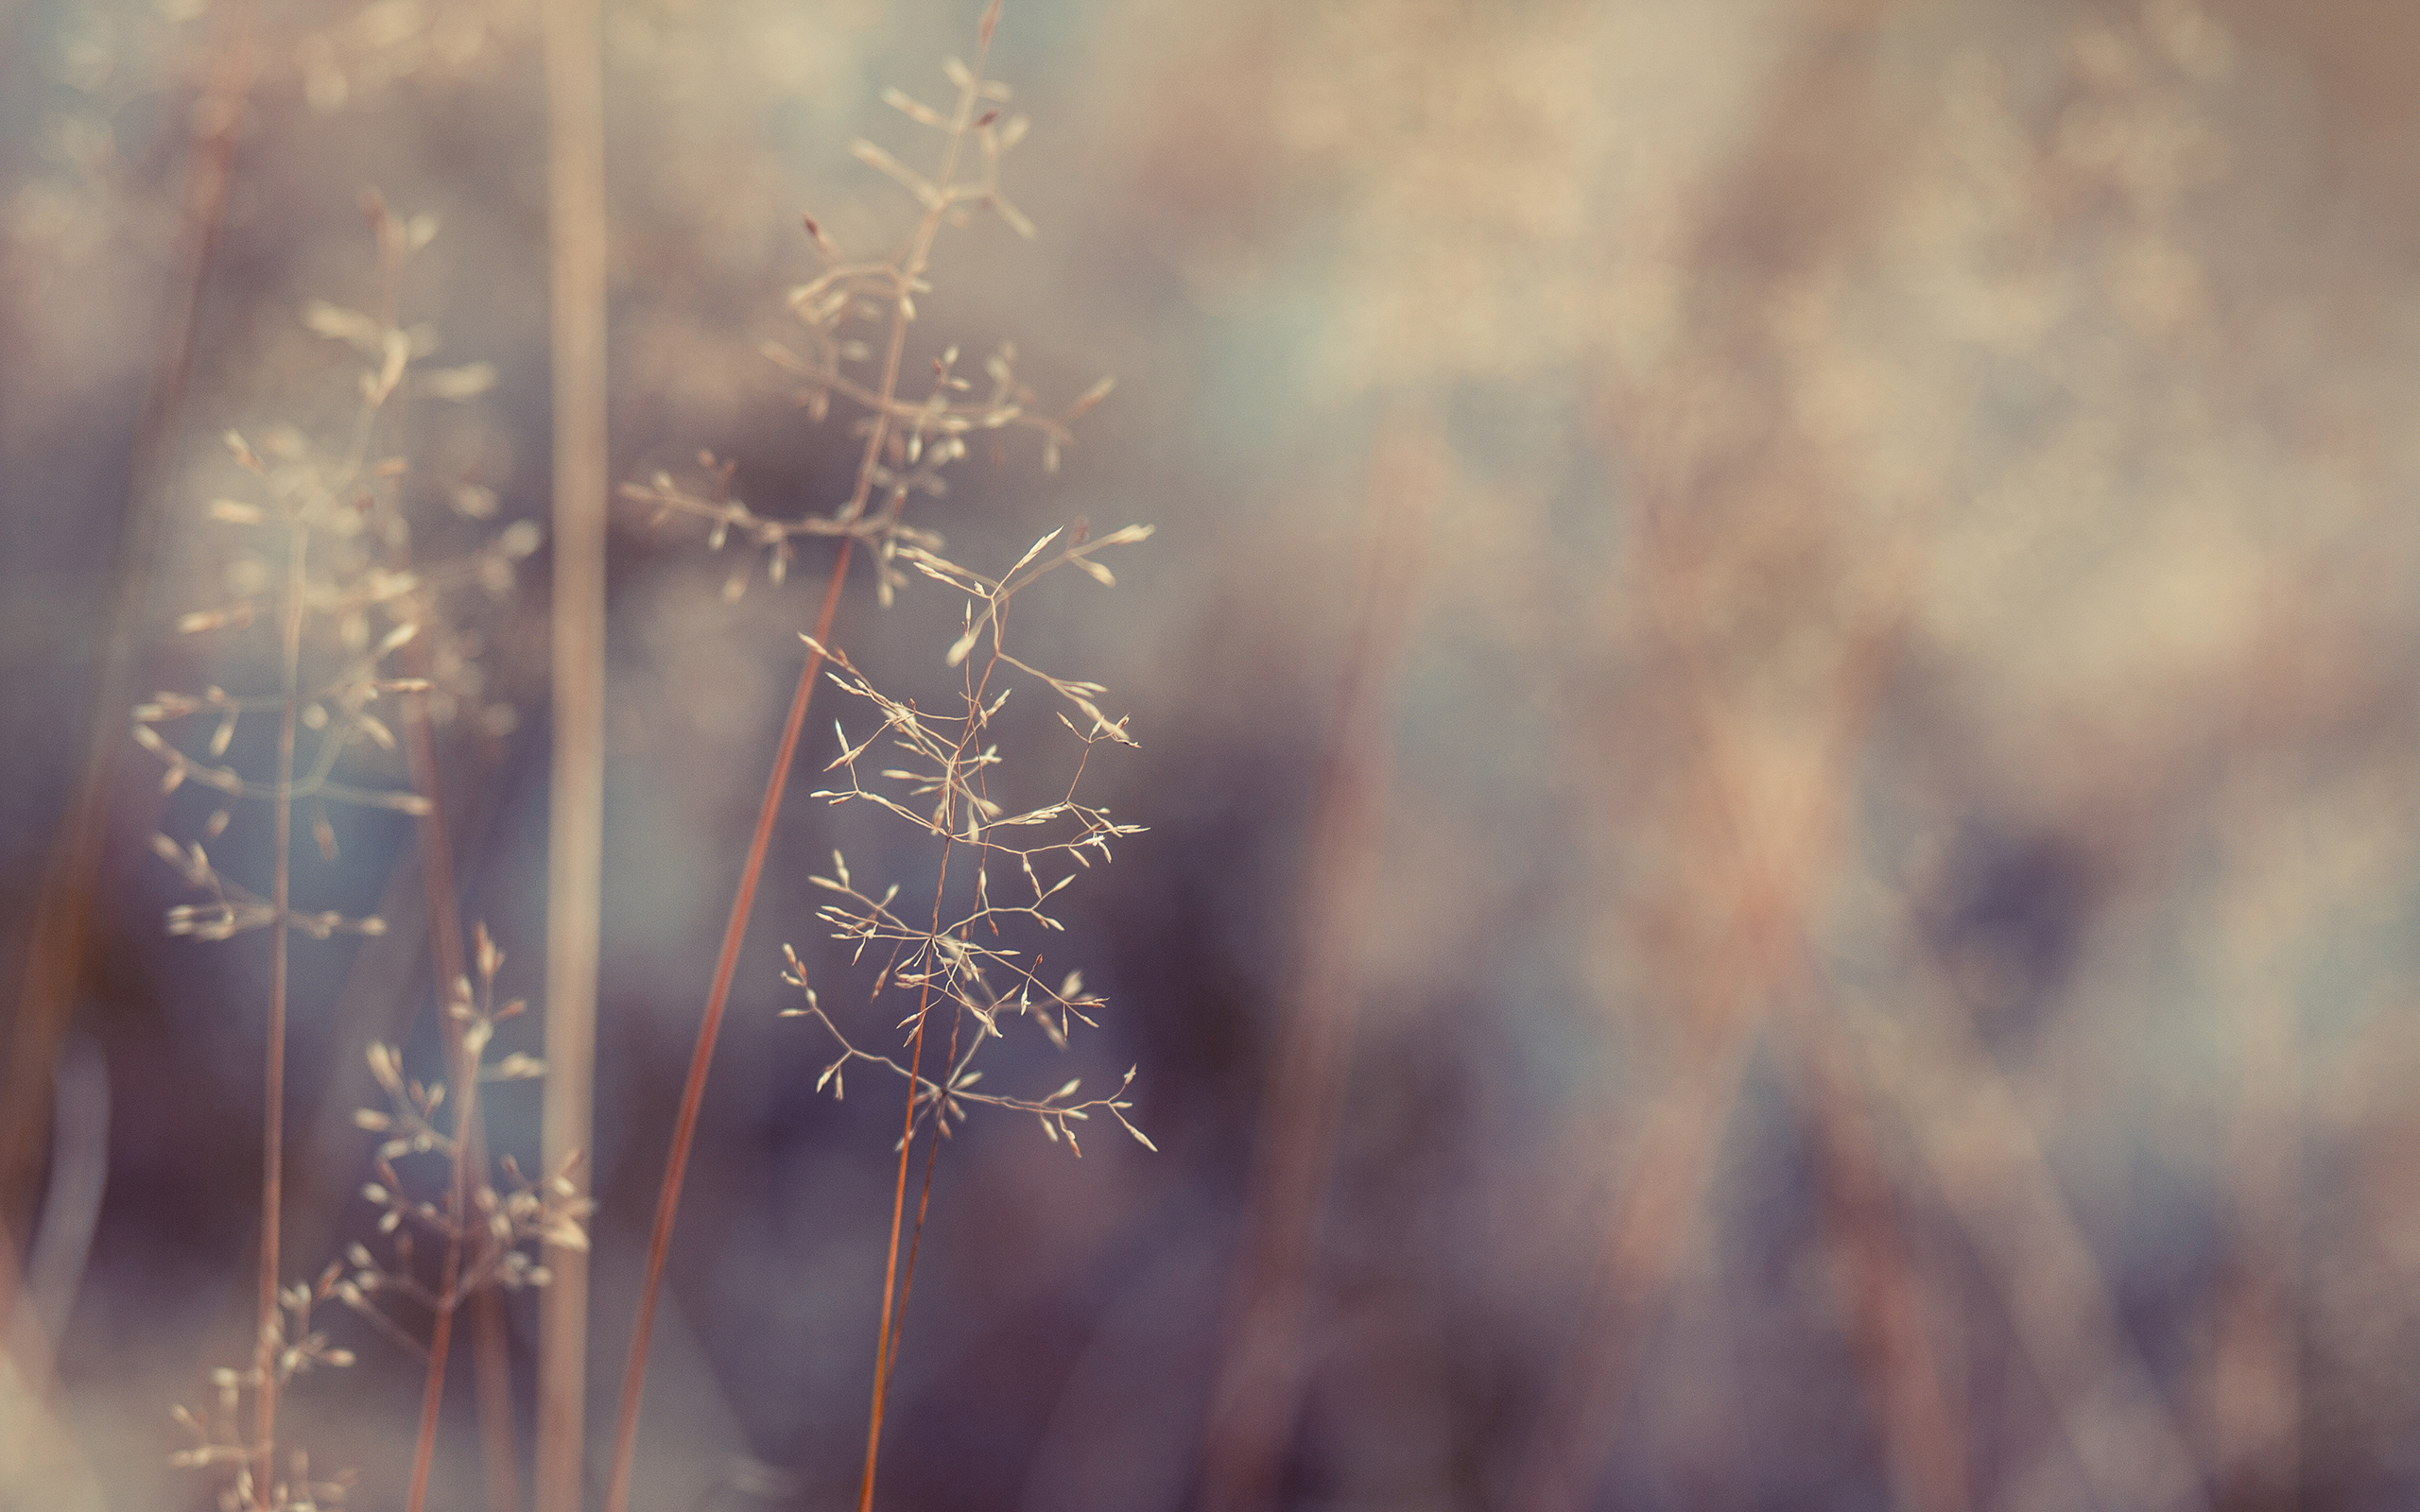 About October by enyoku, field, vegetation, weeds